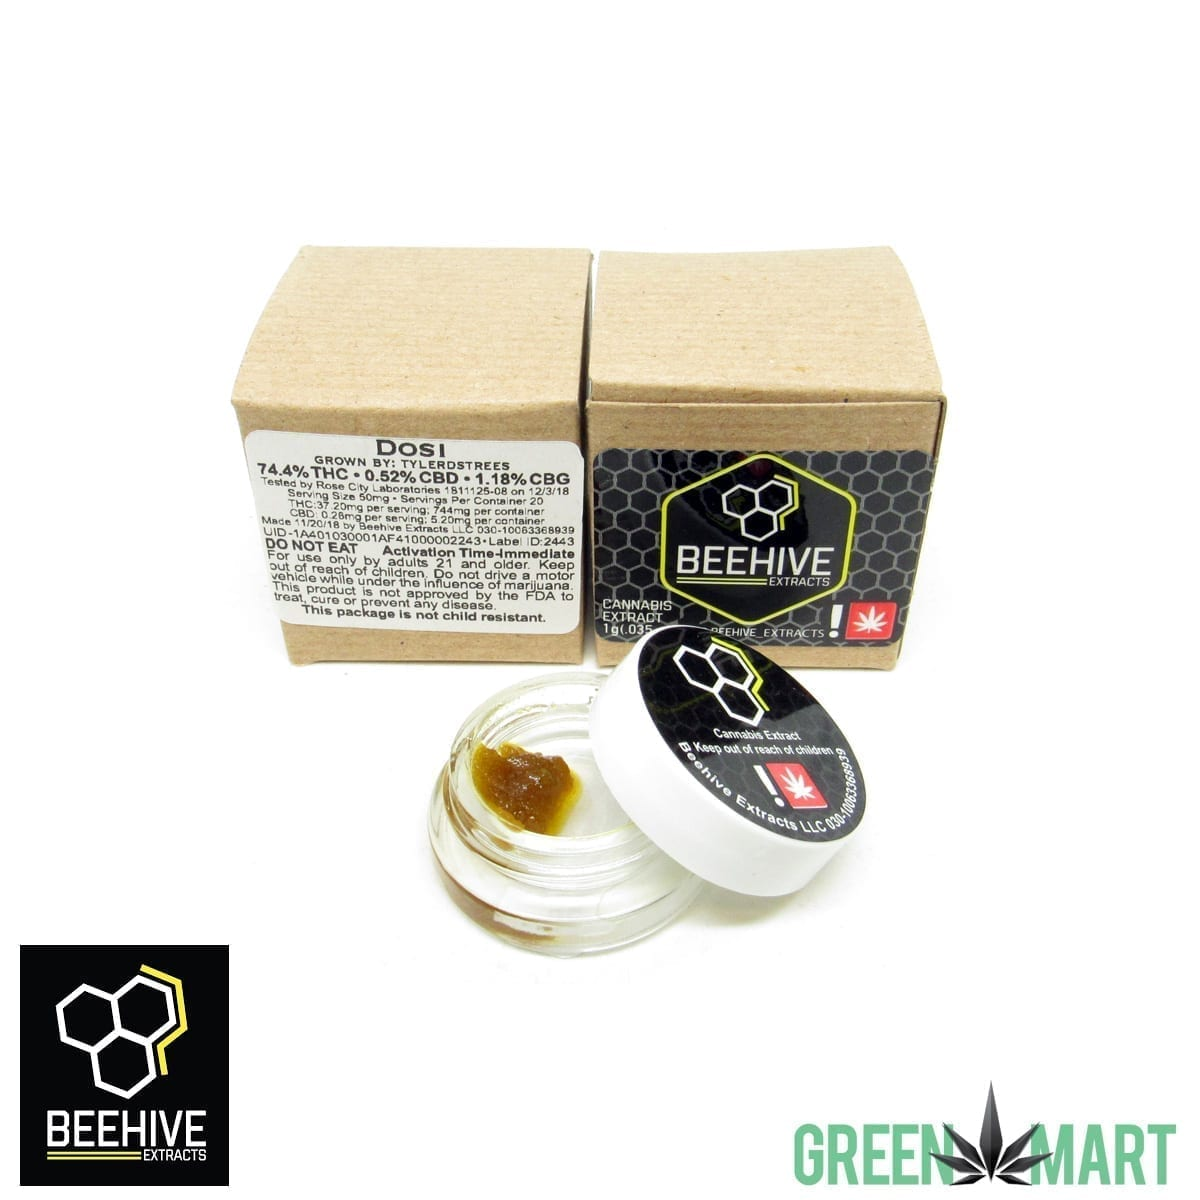 Bee Hive Extracts - Dosi